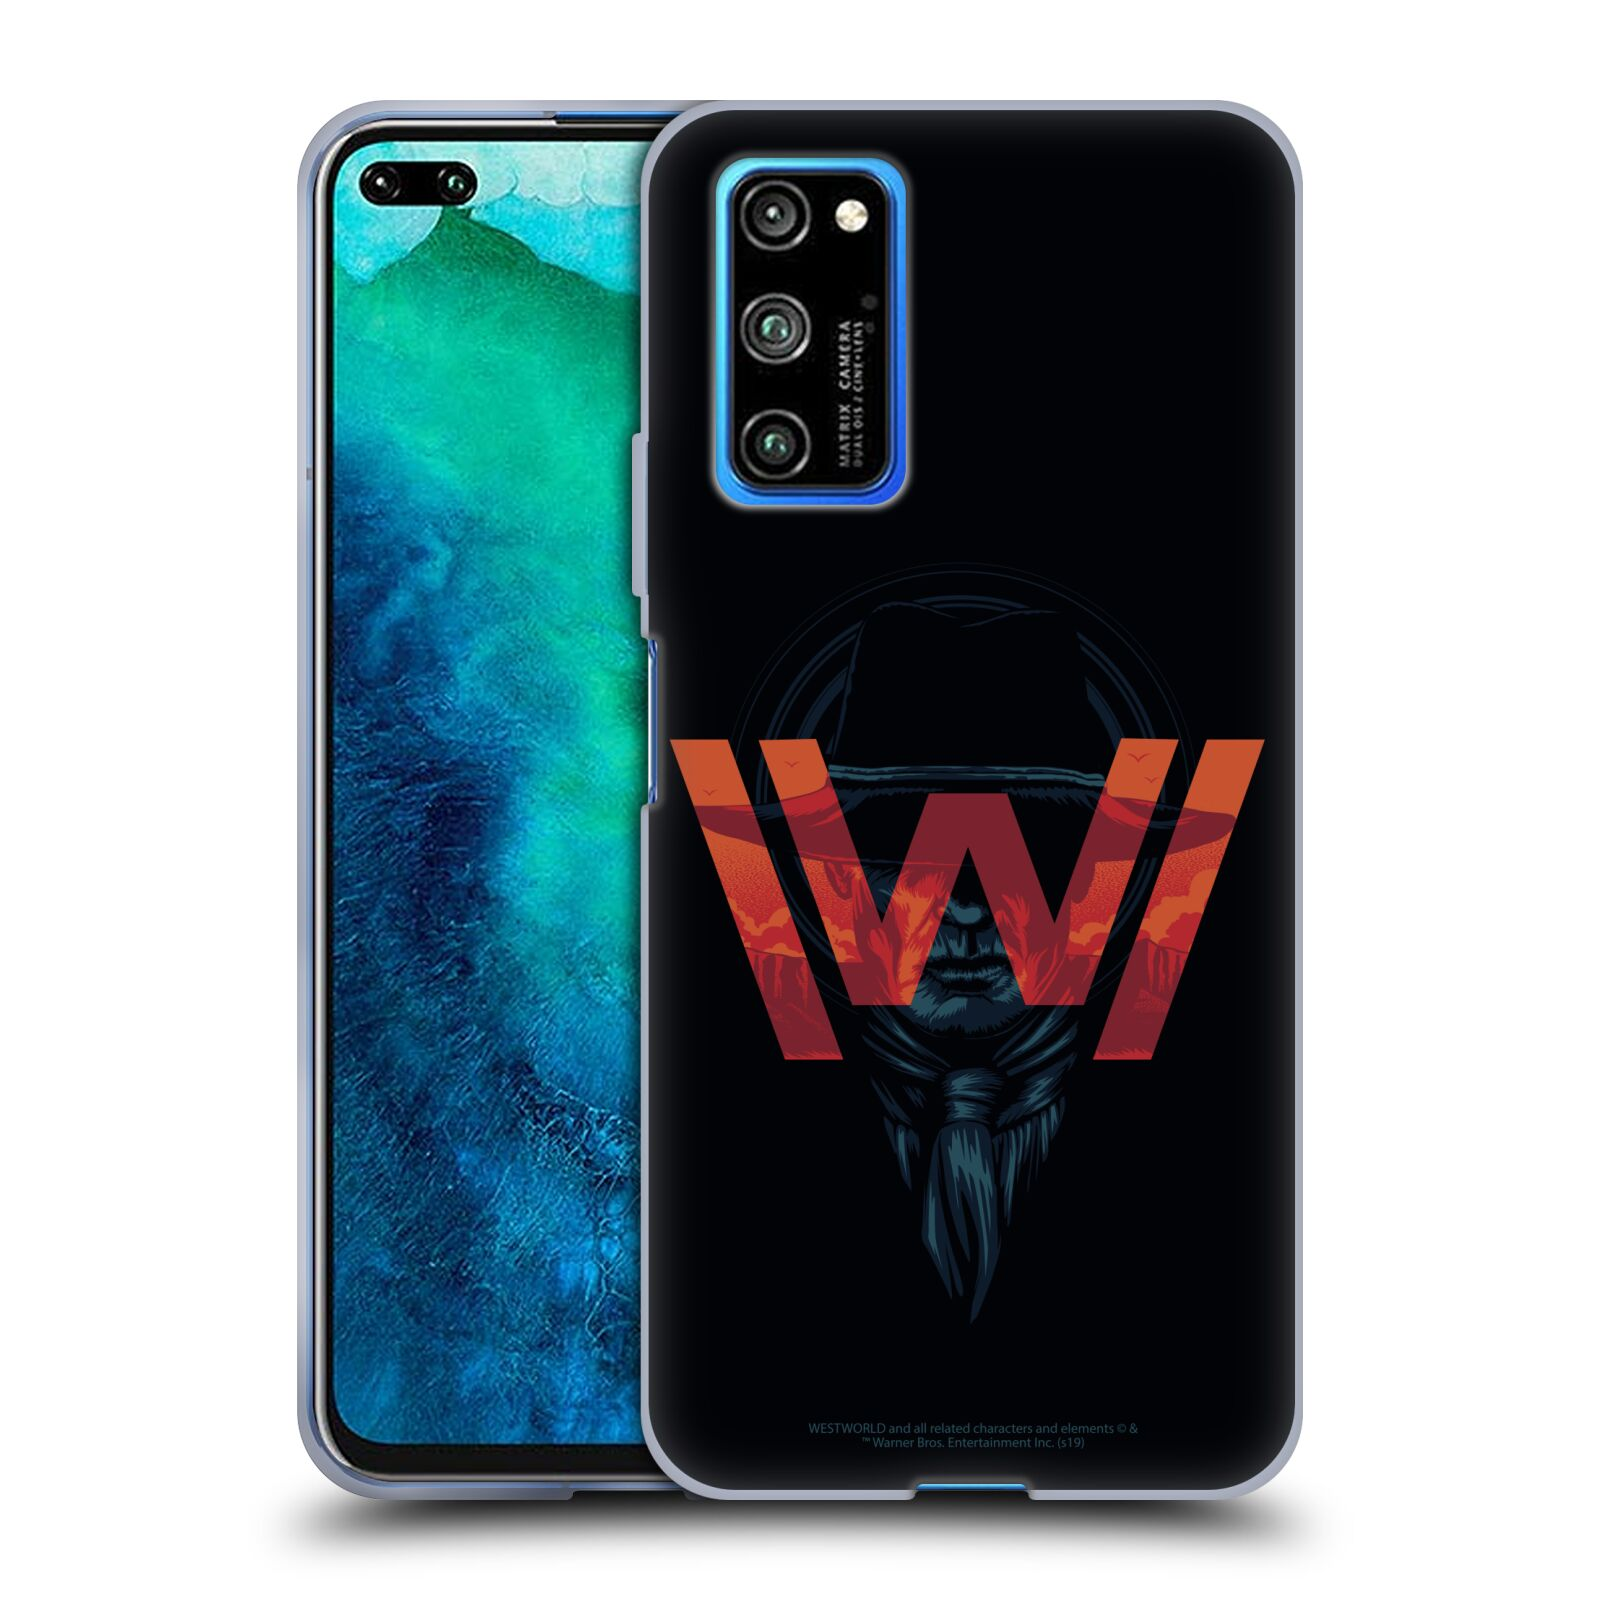 Official Westworld Logos Man In Black Gel Case for Huawei Honor V30 Pro / View 30 Pro